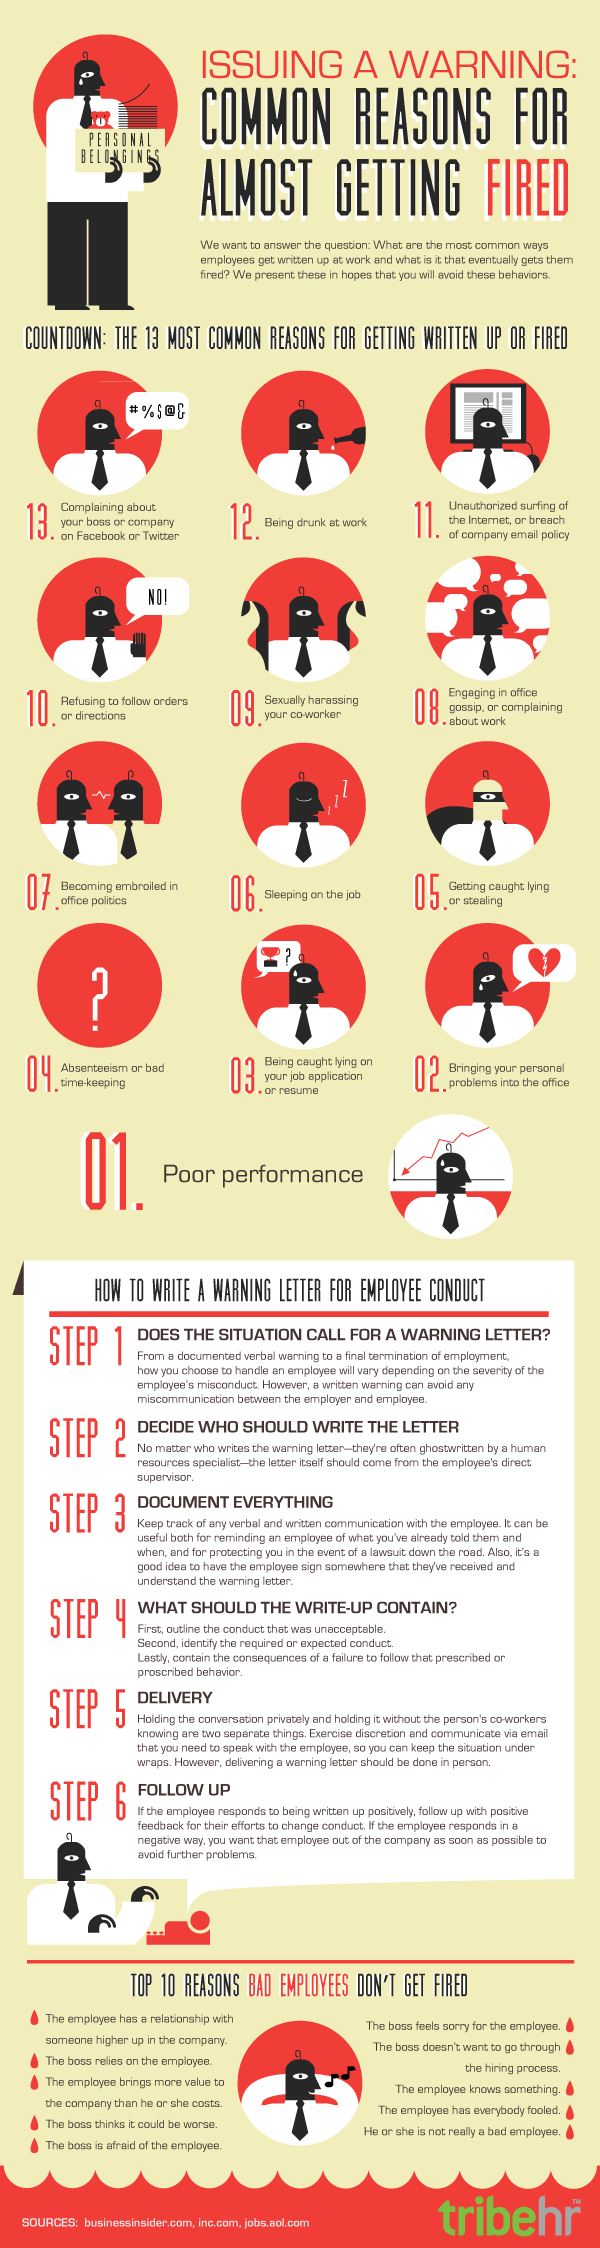 Most Common Reasons People Get Fired From Jobs Infographic